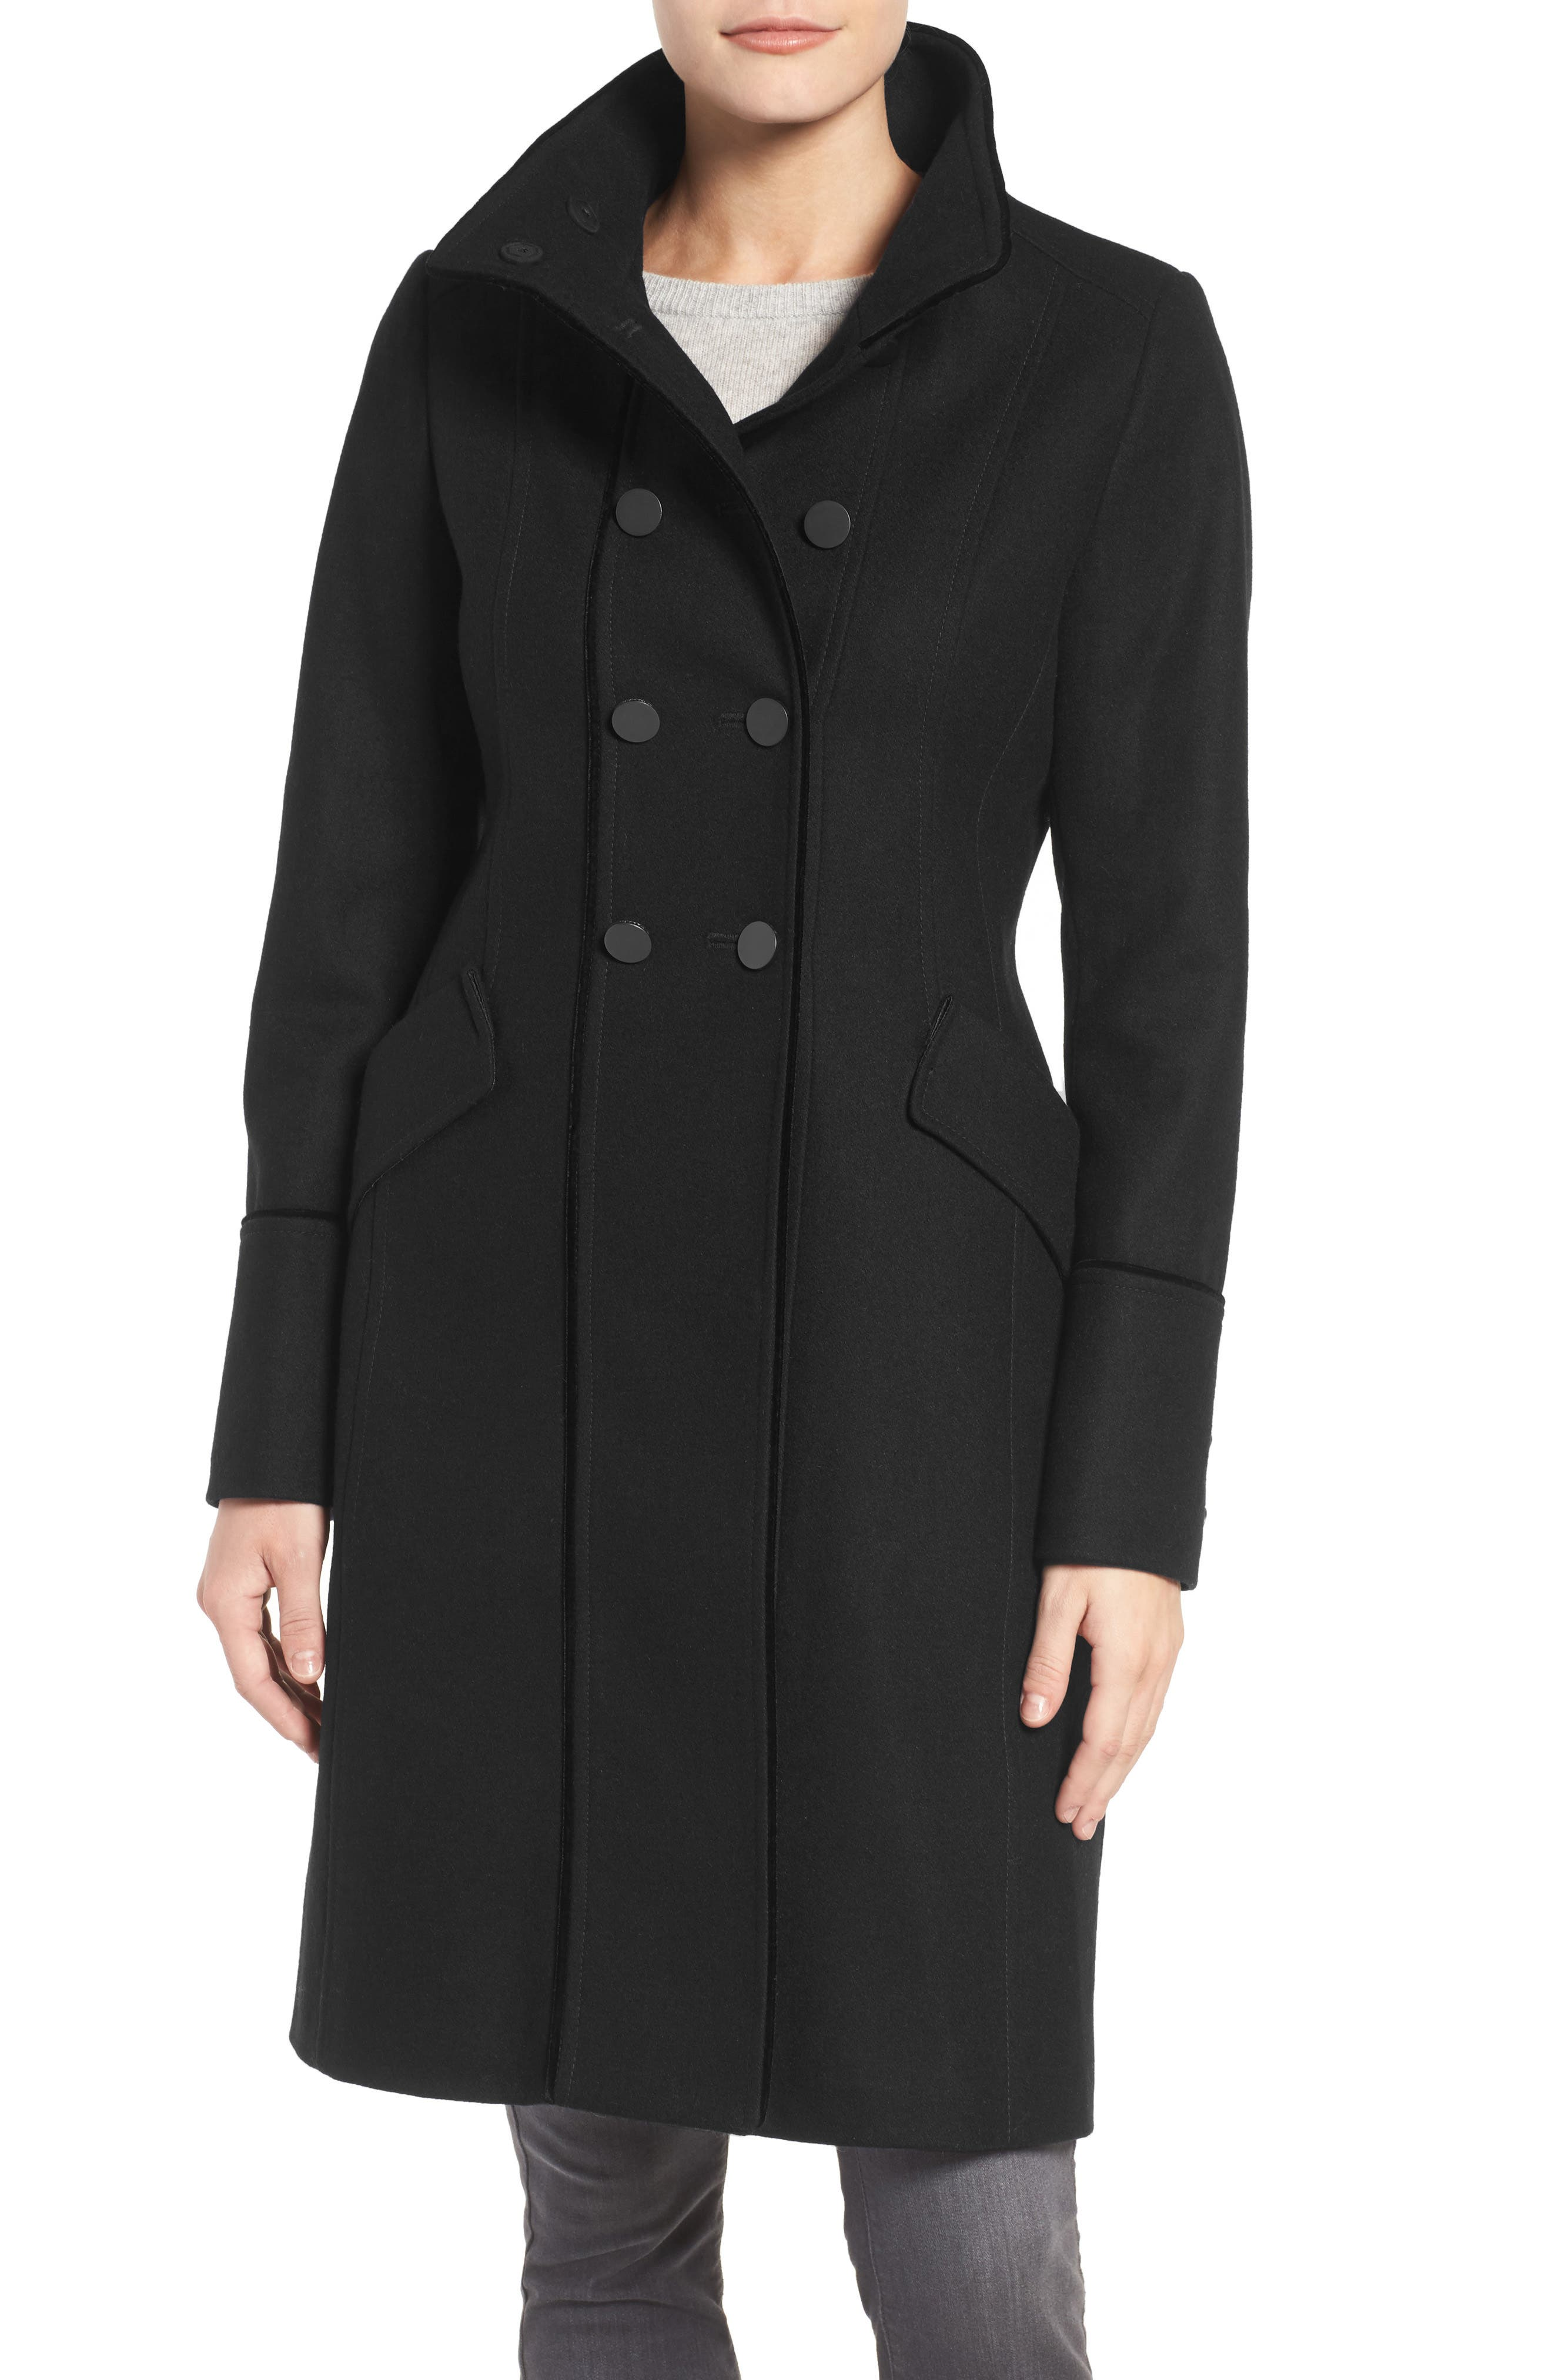 Alice Wool Blend Officer's Coat,                             Main thumbnail 1, color,                             001